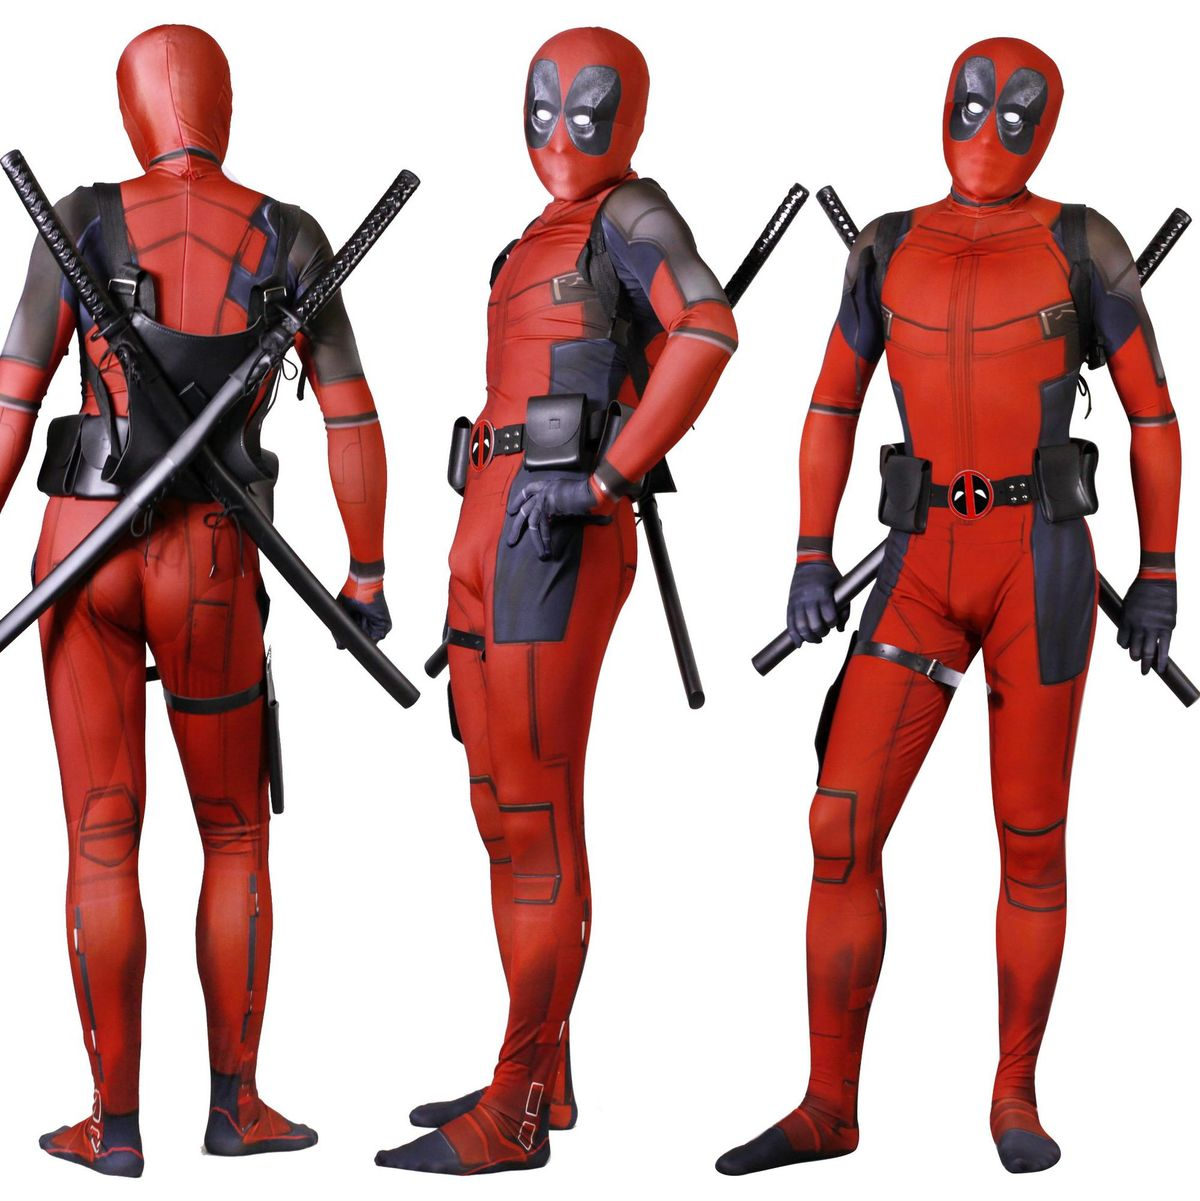 deadpool costume adult Man marvel cosplay deadpool costumes men kids Wade Wilson Spandex Lycra Nylon Zentai bodysuit Halloween